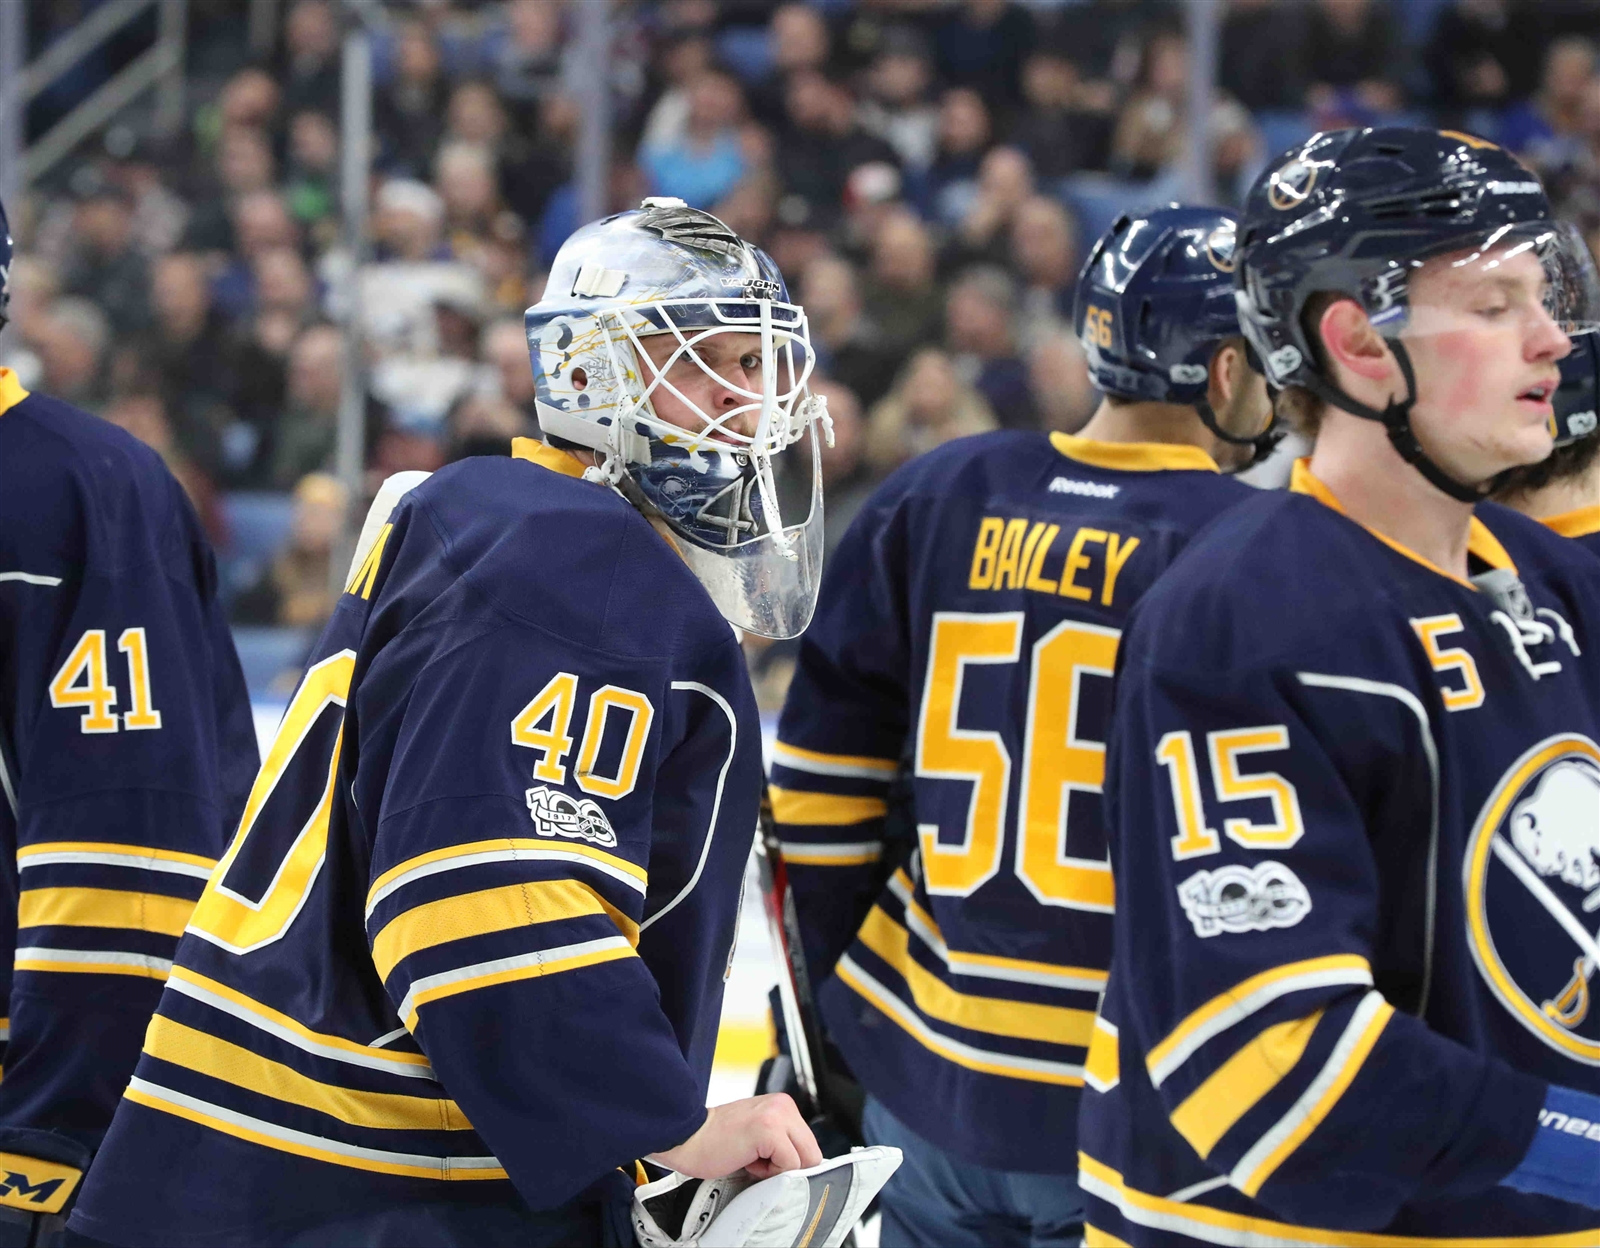 The Sabres are just 3-5-2 in their last 10 games. (James P. McCoy/Buffalo News)